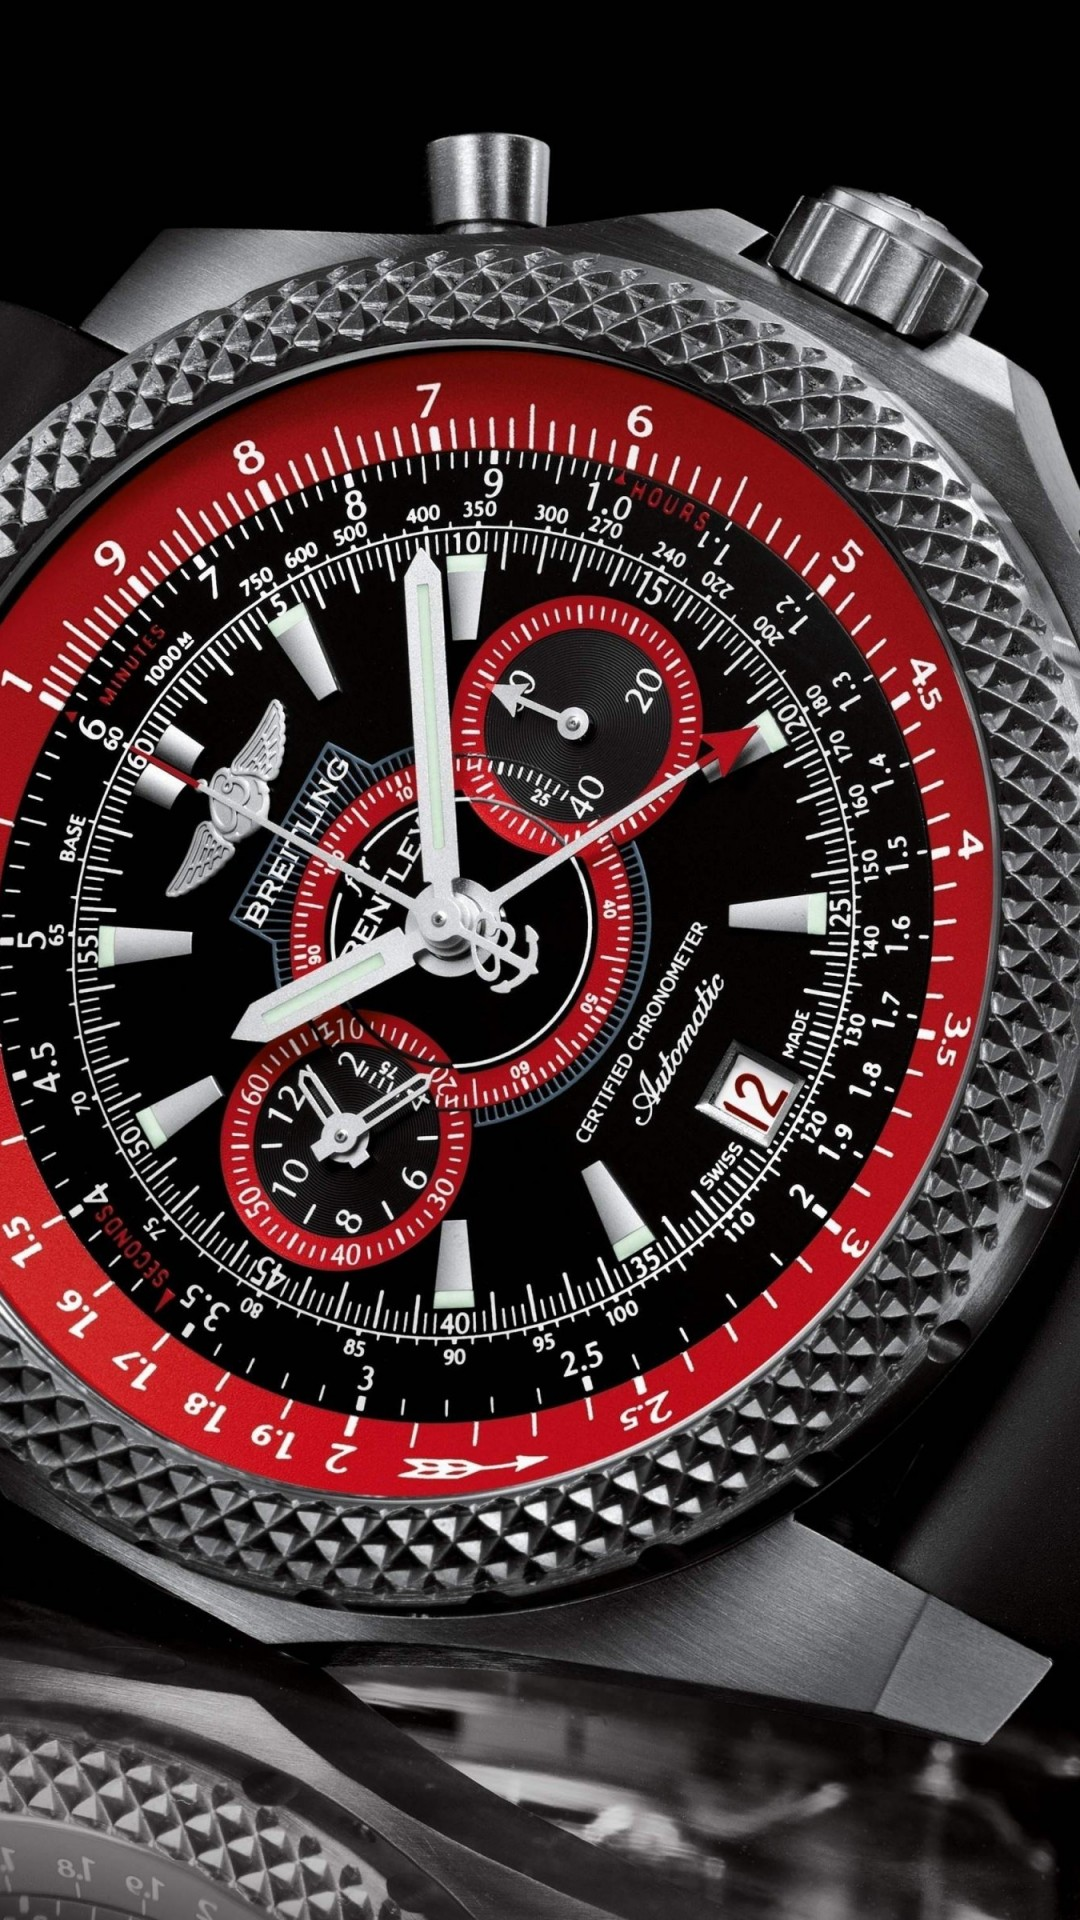 Breitling Watch Wallpaper for HTC One